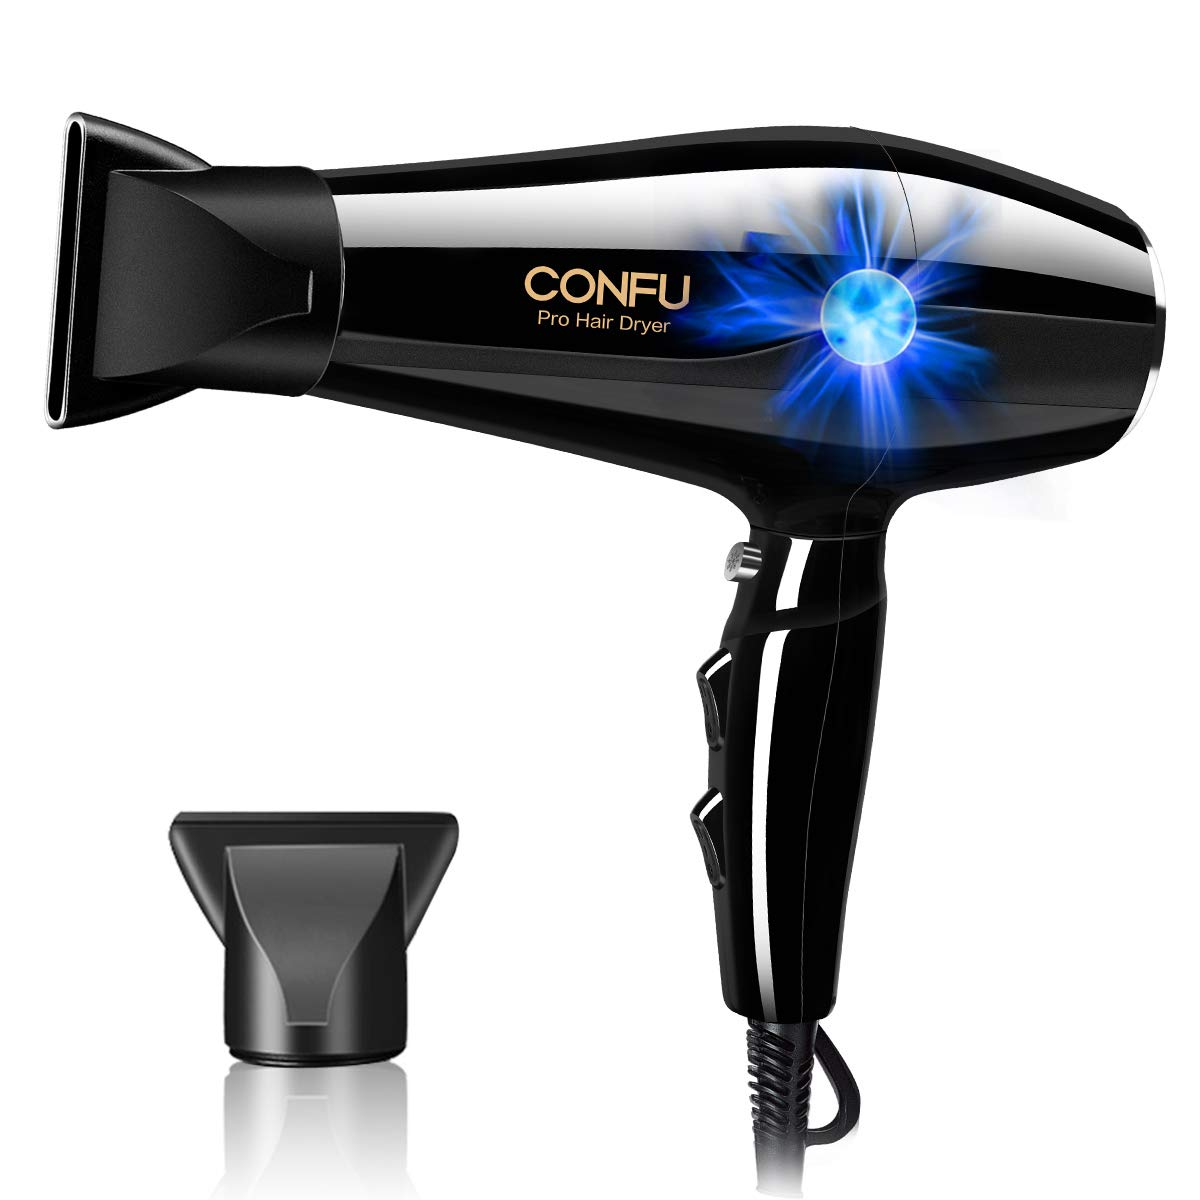 Ionic Hair Dryer CONFU 1875W Professional Blow Dryer with AC Motor 2 Speed 3 Heat Settings Cool Shot Button Fast Drying for Healthy and Non Frizzy Hair ETL Certified Black KF-5899